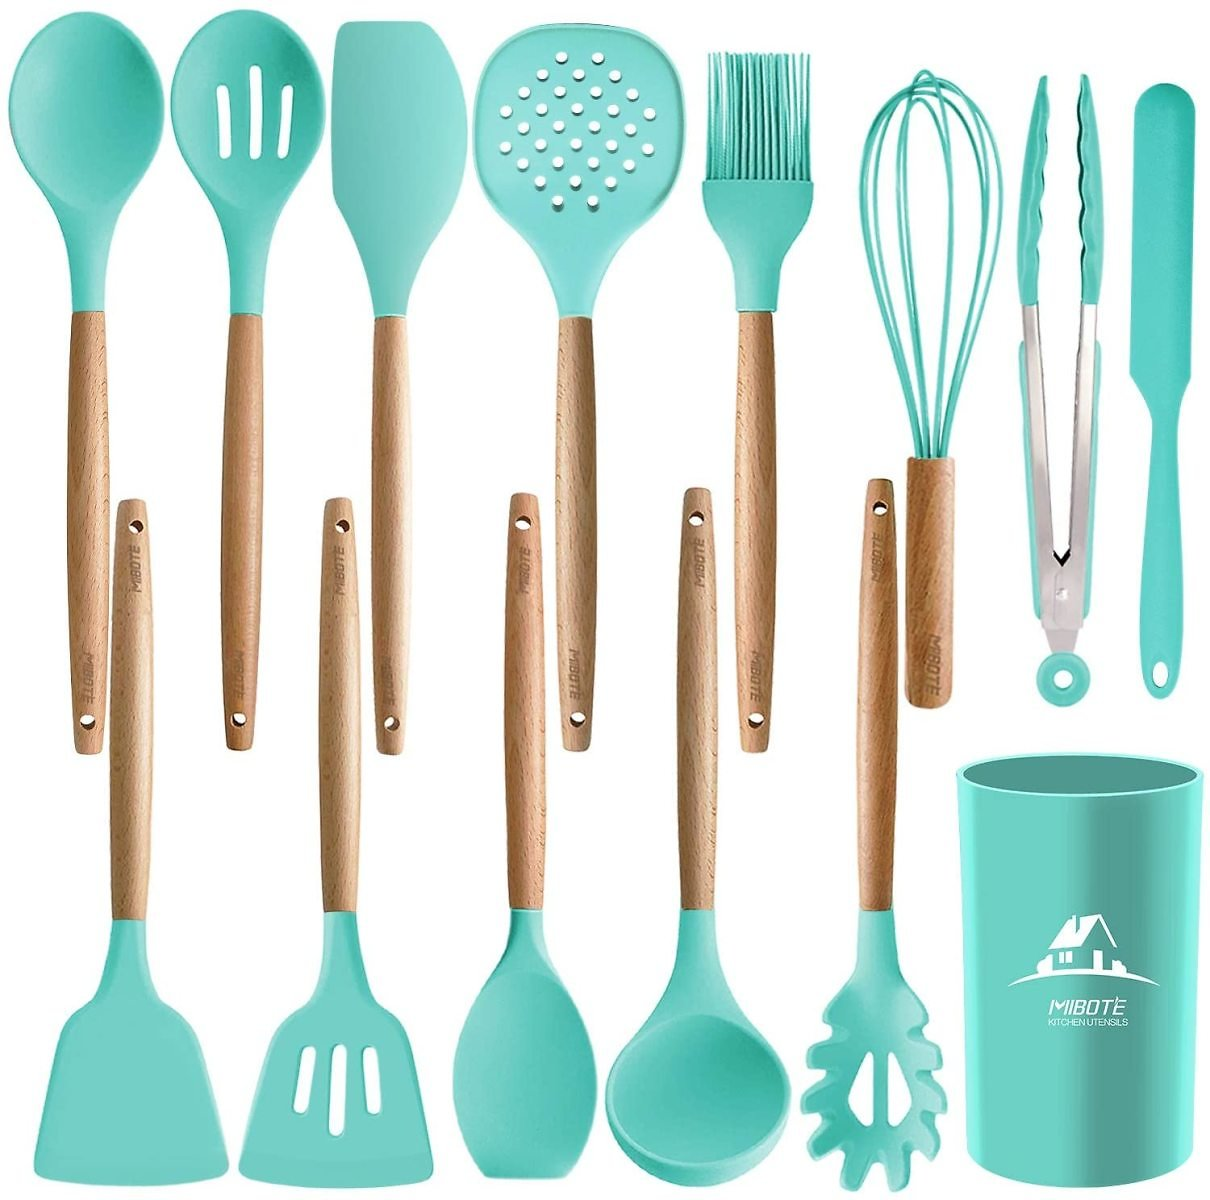 14PCS Silicone Cooking Kitchen Utensils Set with Holder